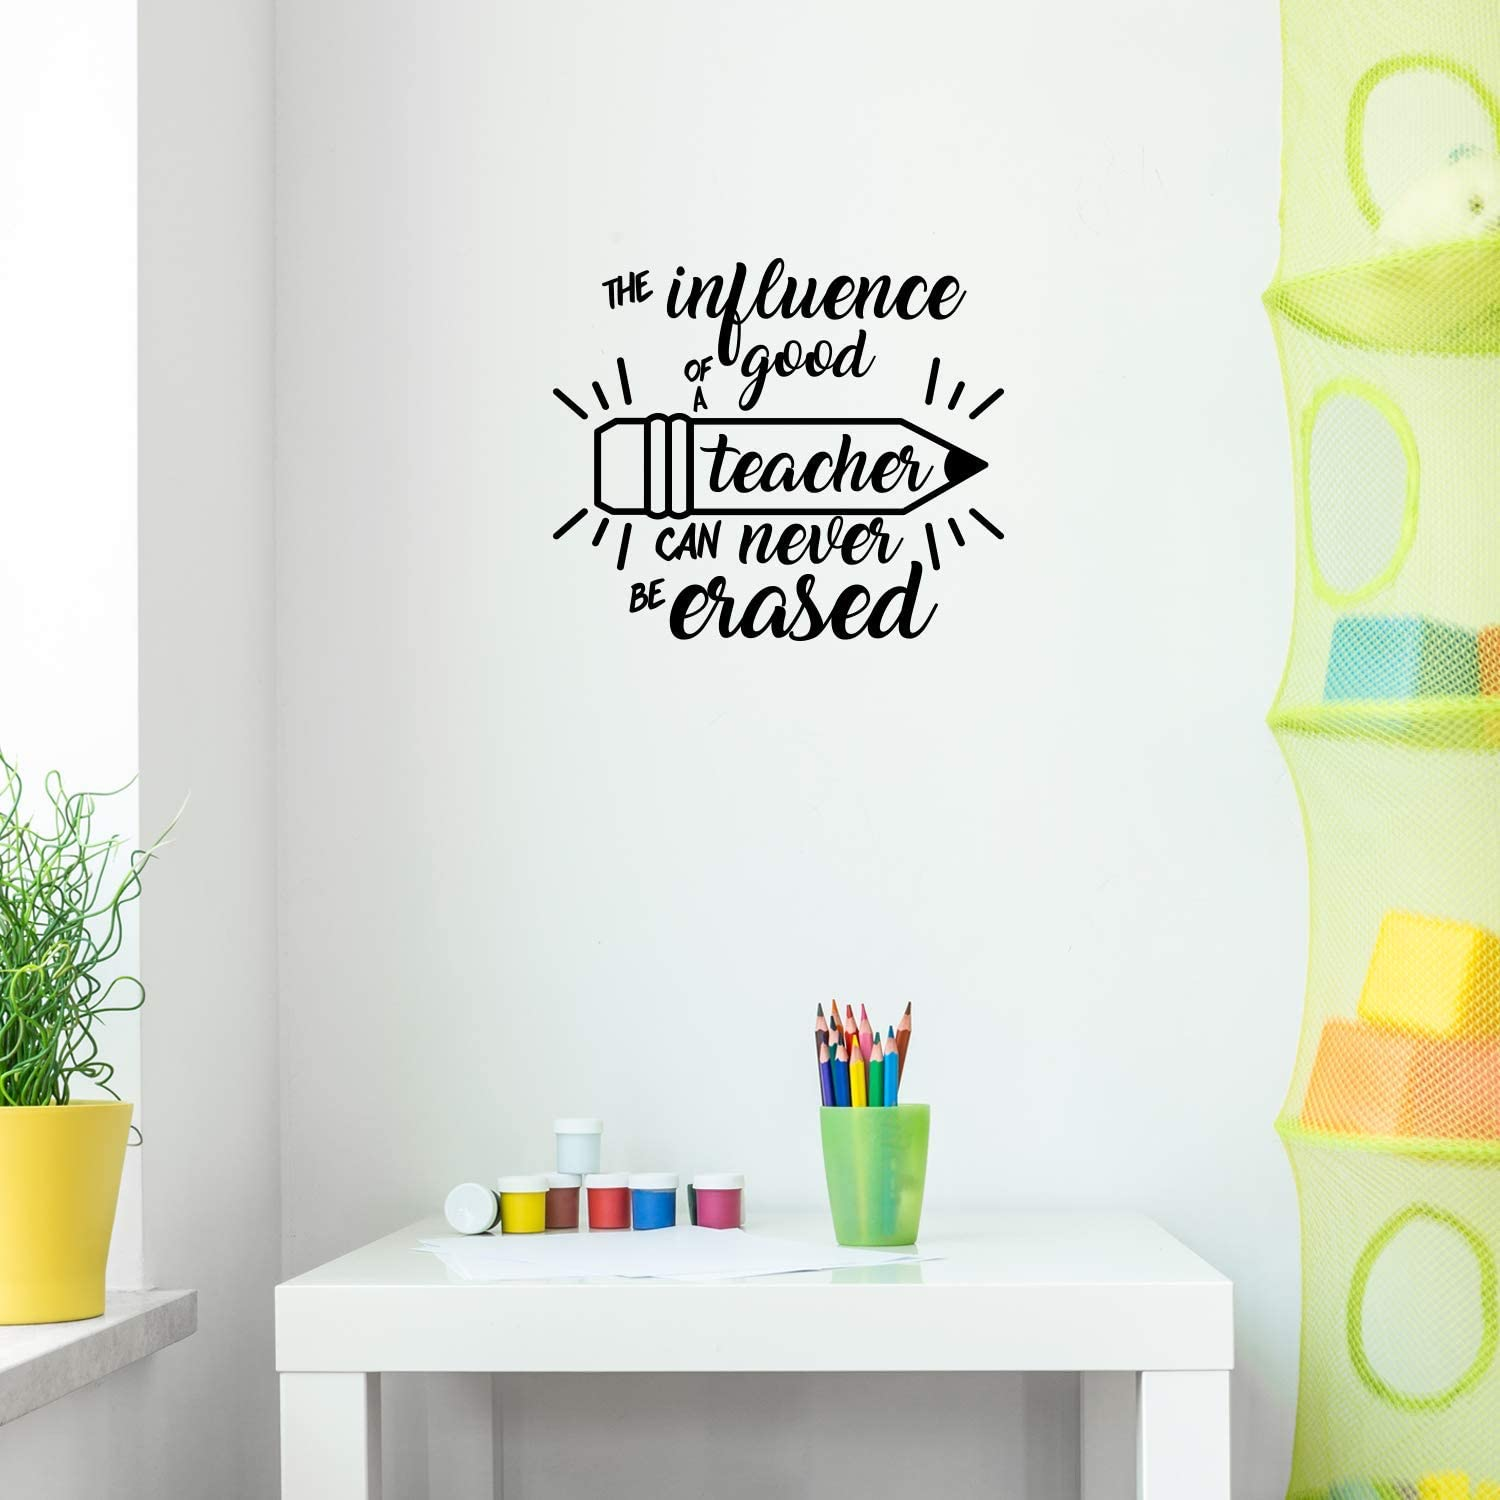 "Vinyl Wall Art Decal - The Influence of A Good Teacher Can Never Be Erased - 17"" x 20"" - Inspirational Teachers Quote for Home Bedroom Office Workplace School Classroom Indoor Decoration"